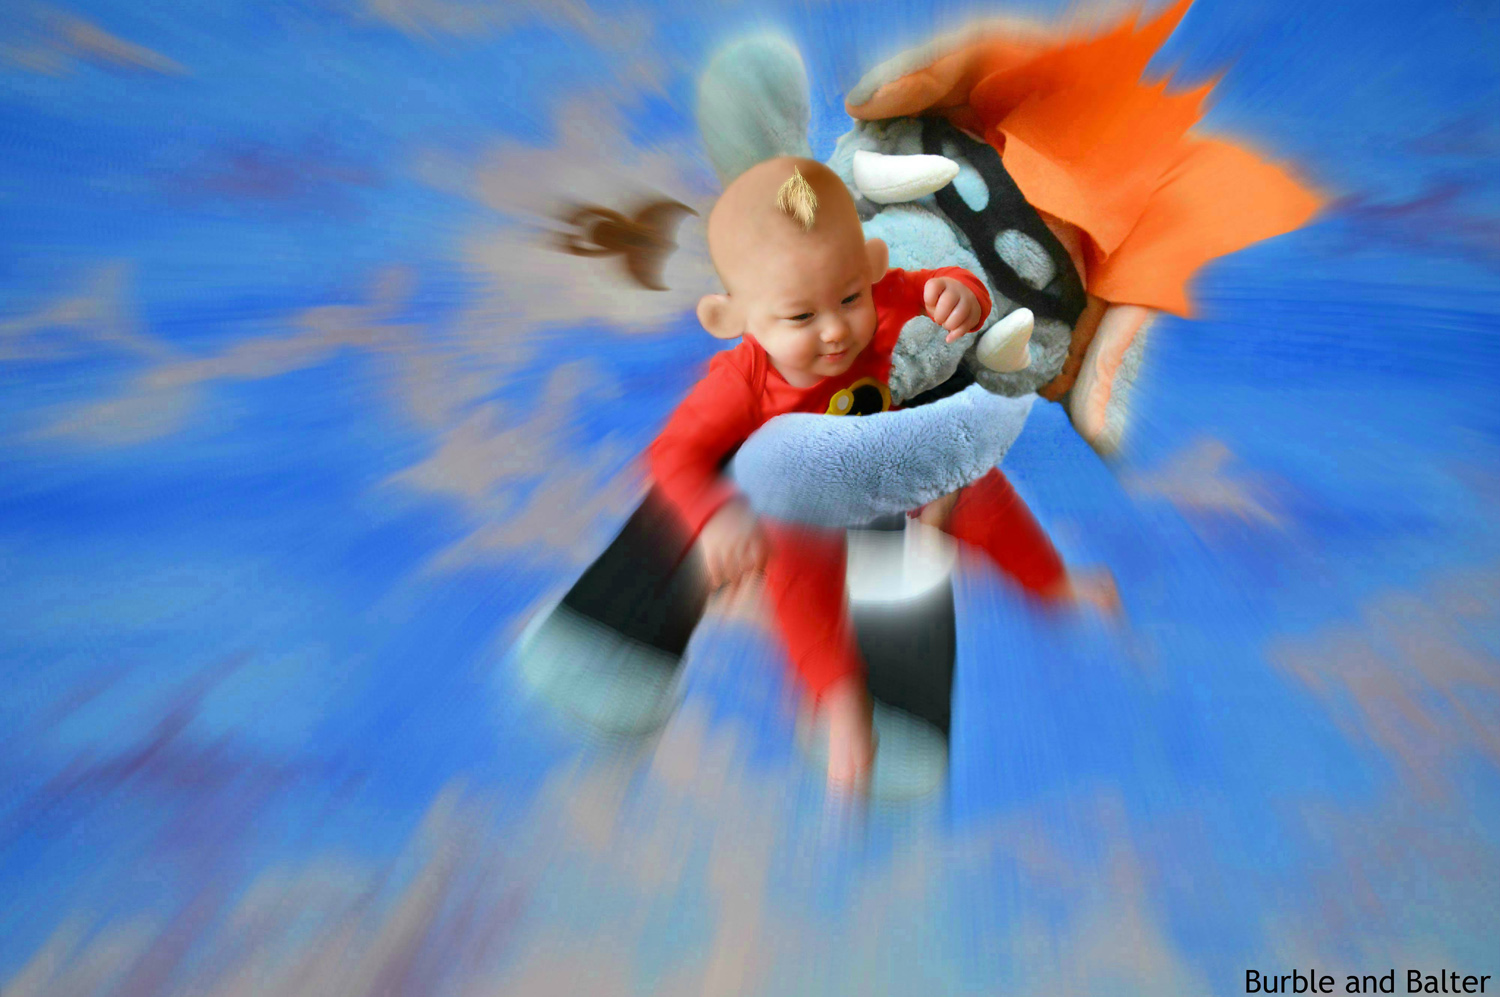 Jack-Jack-Incredibles-Photo-3-Burble-and-Balter.jpg